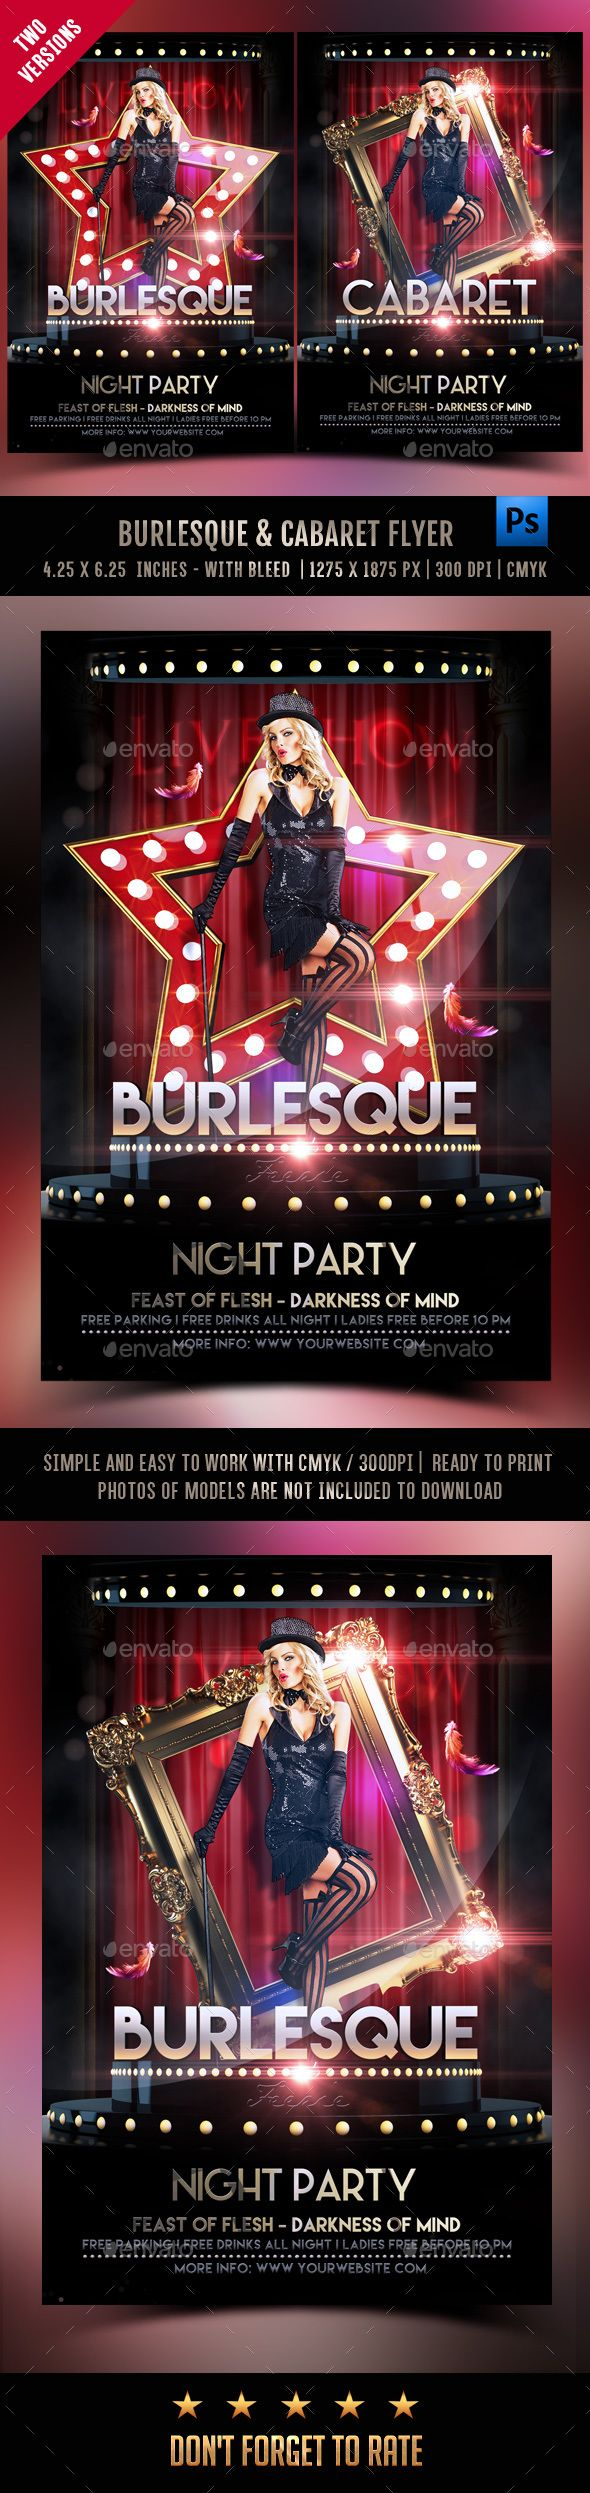 Burlesque And Cabaret Flyer — Photoshop PSD #feerie #red • Available here → https://graphicriver.net/item/burlesque-and-cabaret-flyer/17244562?ref=pxcr